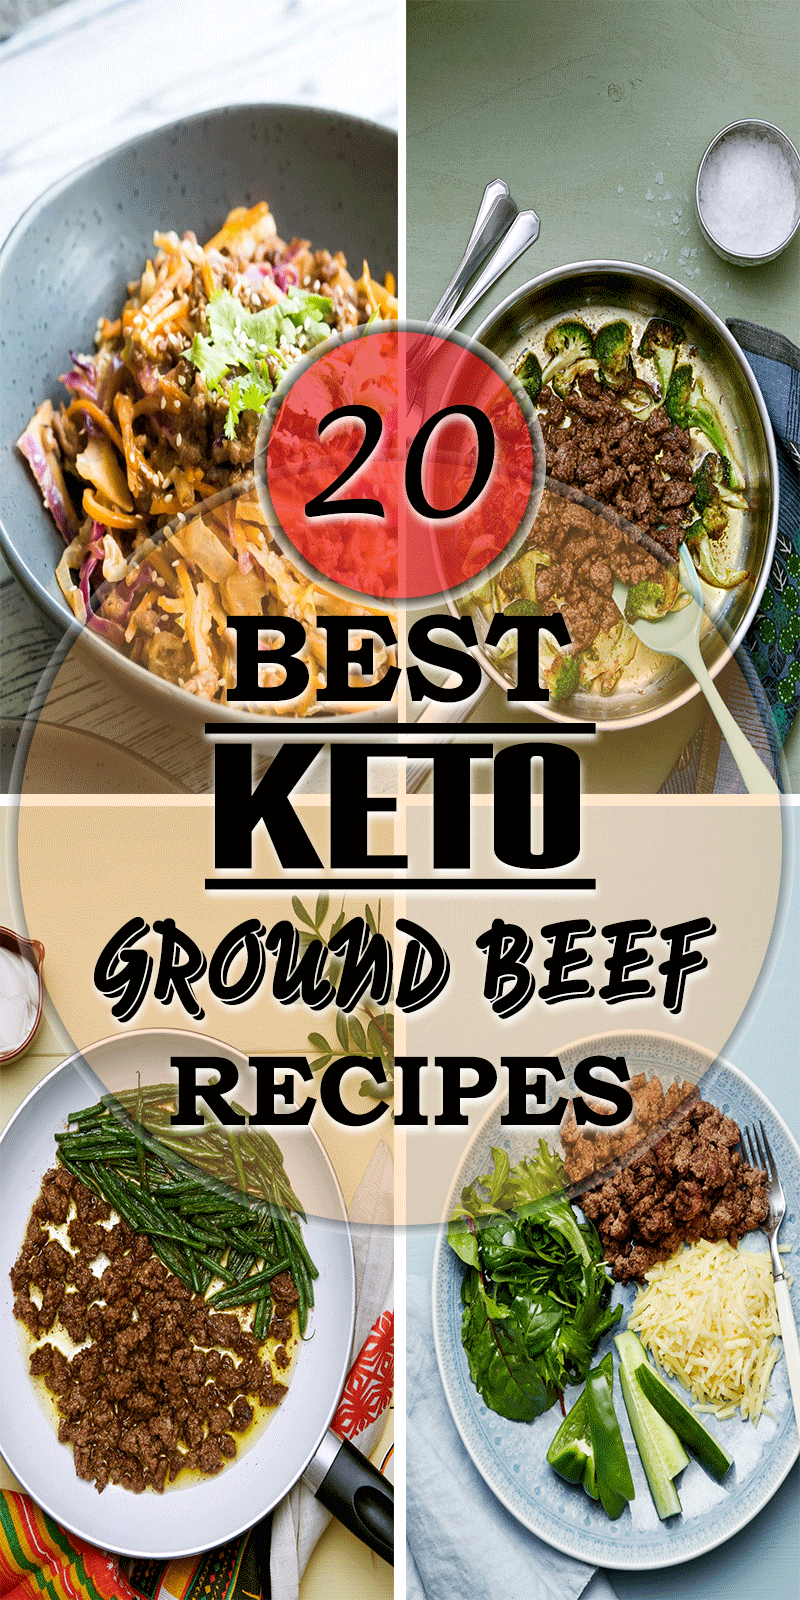 20 Best Ideas Keto Ground Beef Best Diet And Healthy Recipes Ever Recipes Collection Ground Beef And Spinach Ground Beef And Broccoli Diet Doctor Recipes